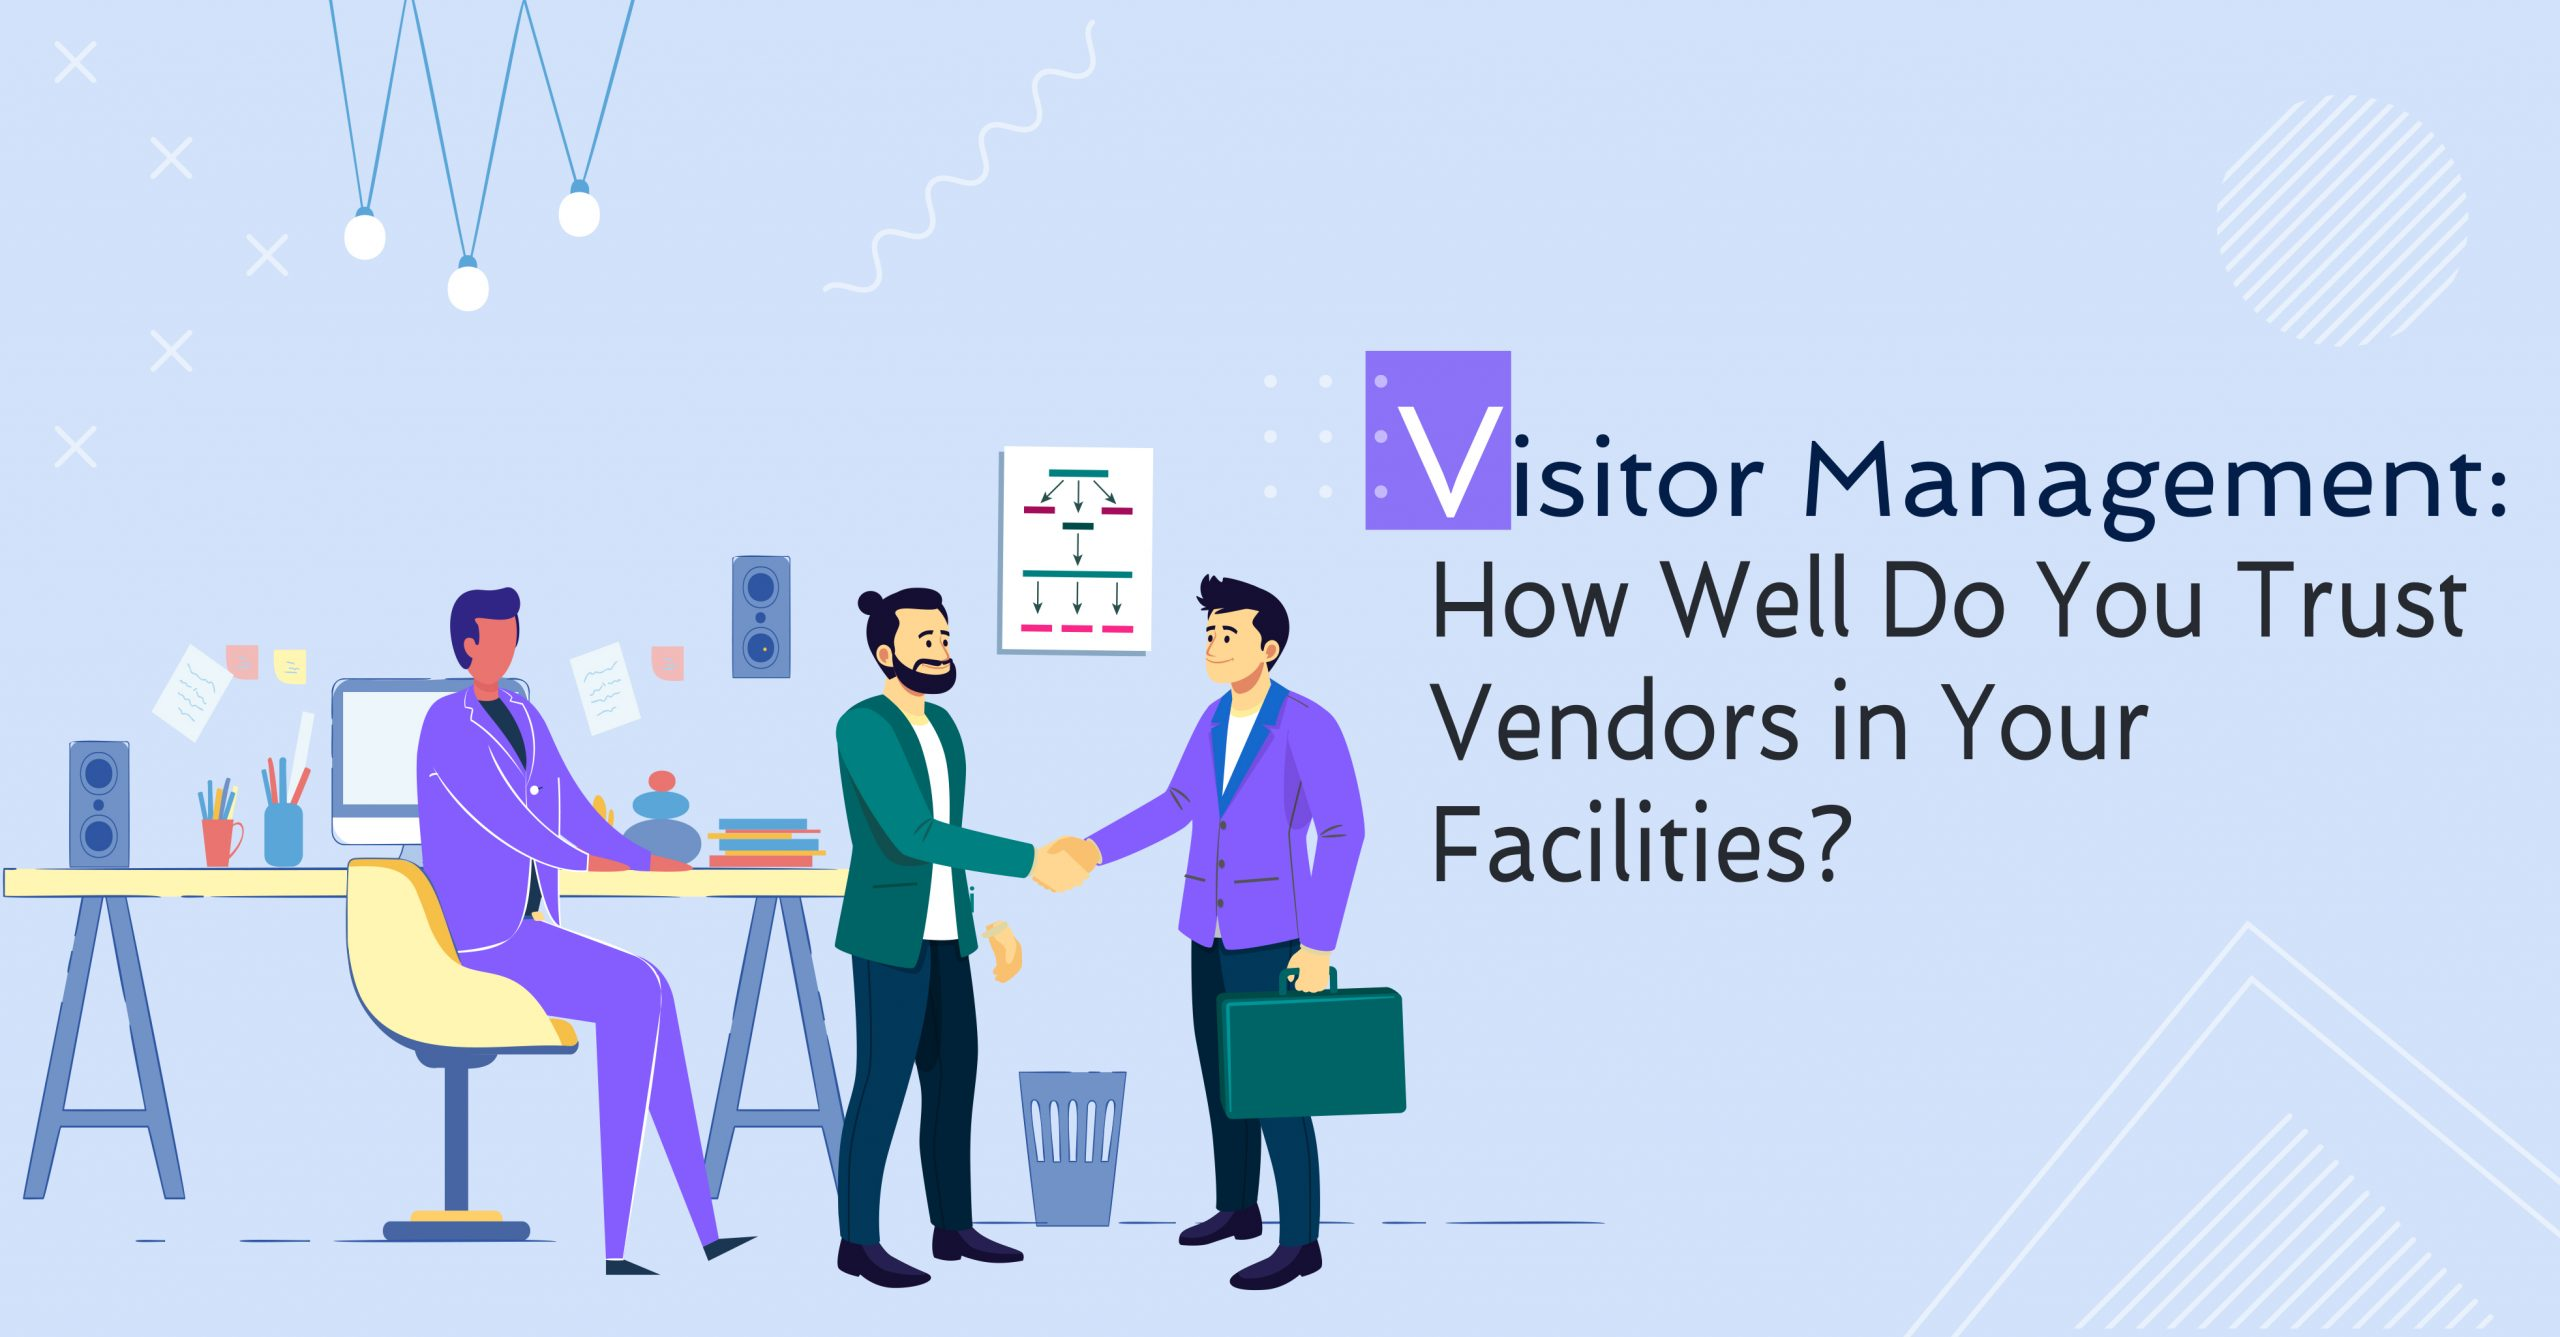 Visitor Management How Well Do You Trust Vendors in Your Facilities?